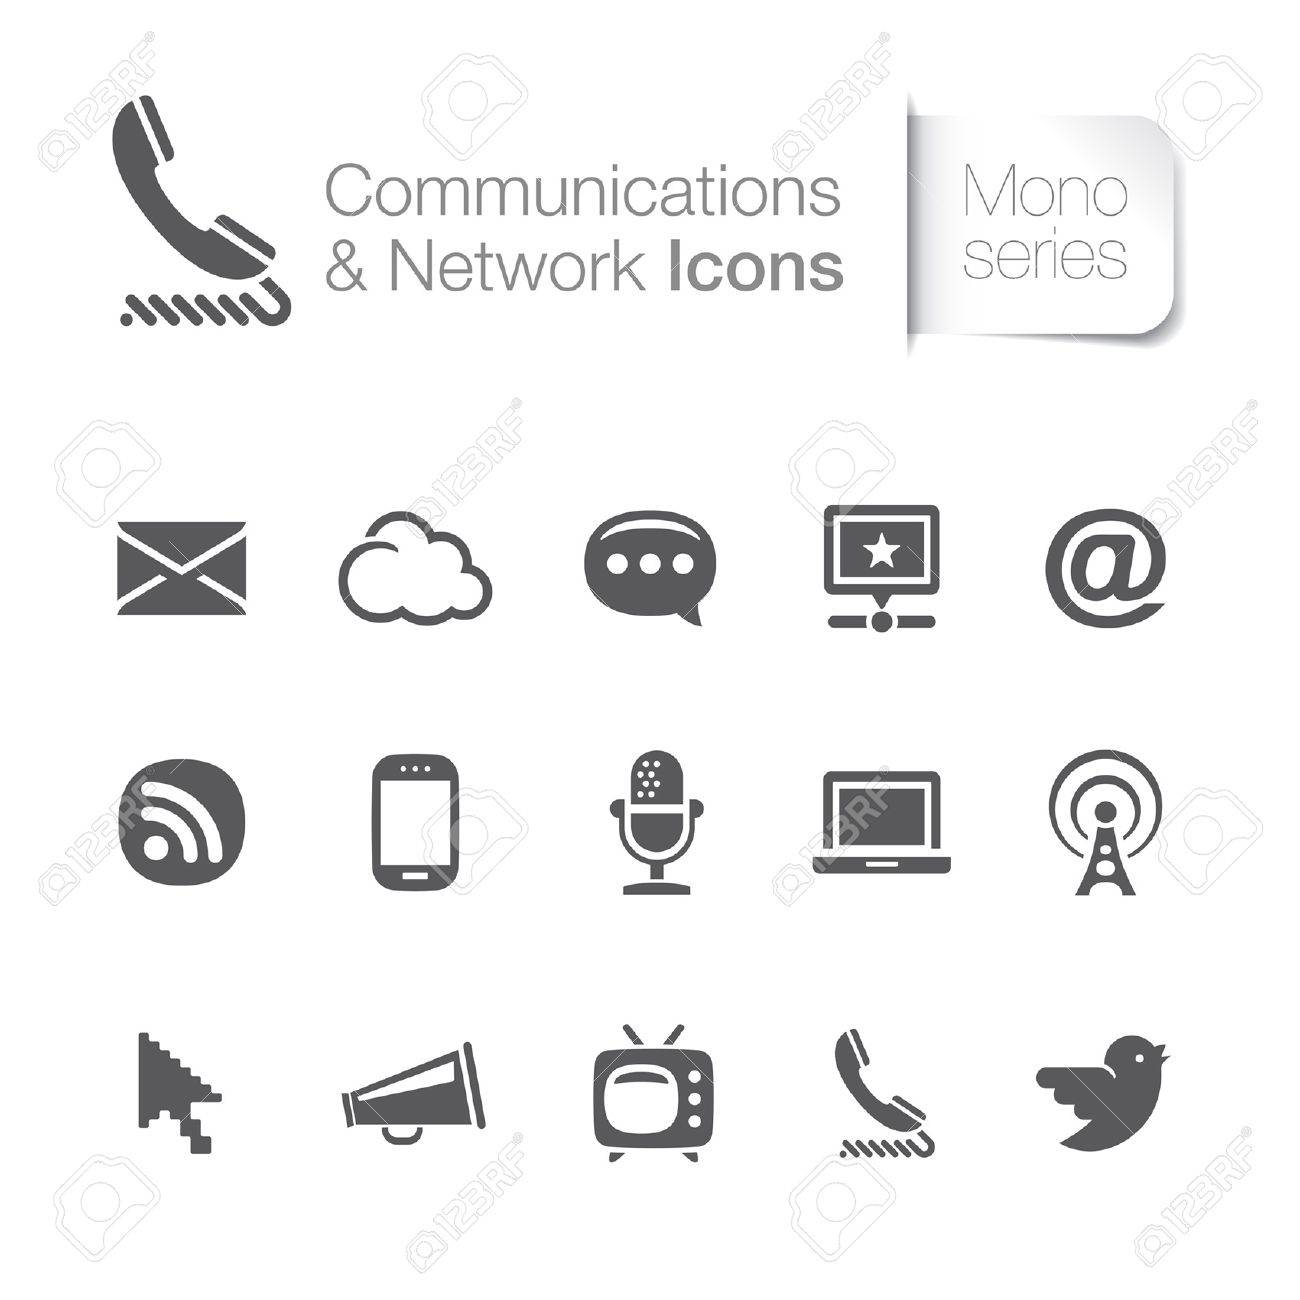 Communication and network related icons Stock Vector - 20563119